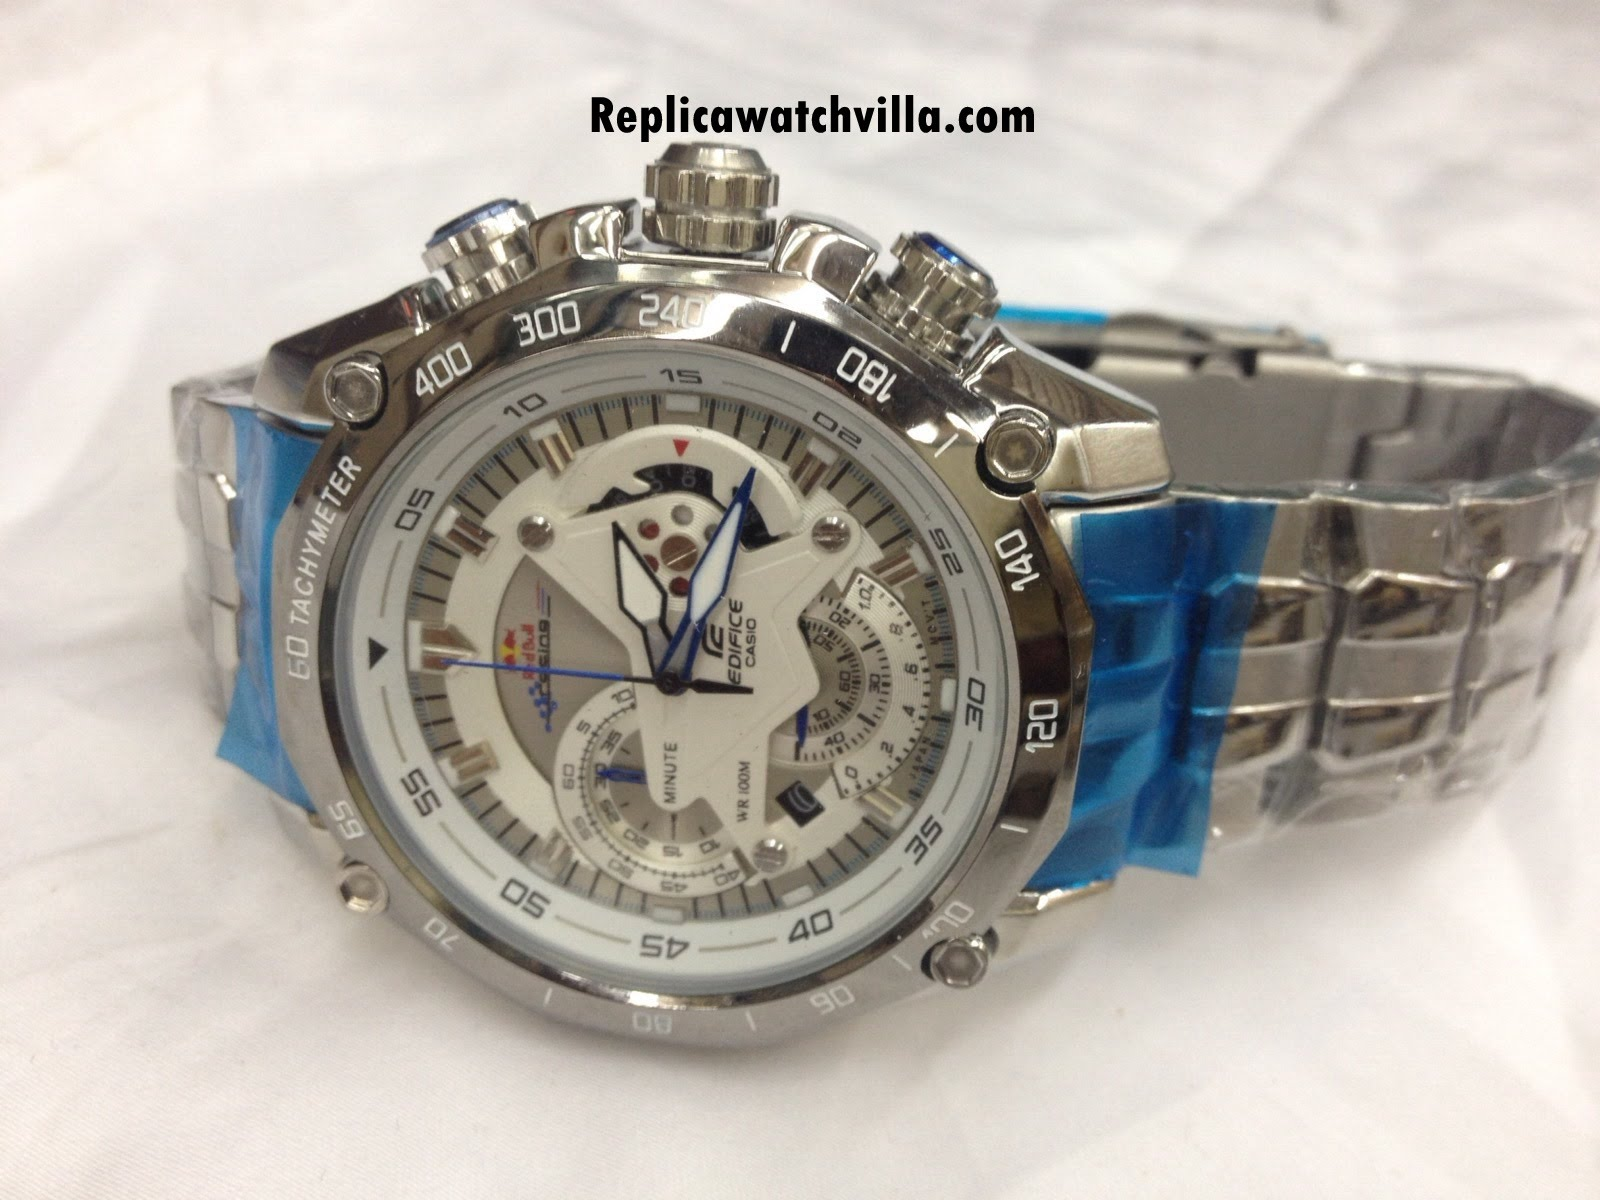 75a0f544028c Buy Duplicate Edifice Replica watches at sale price more brands available